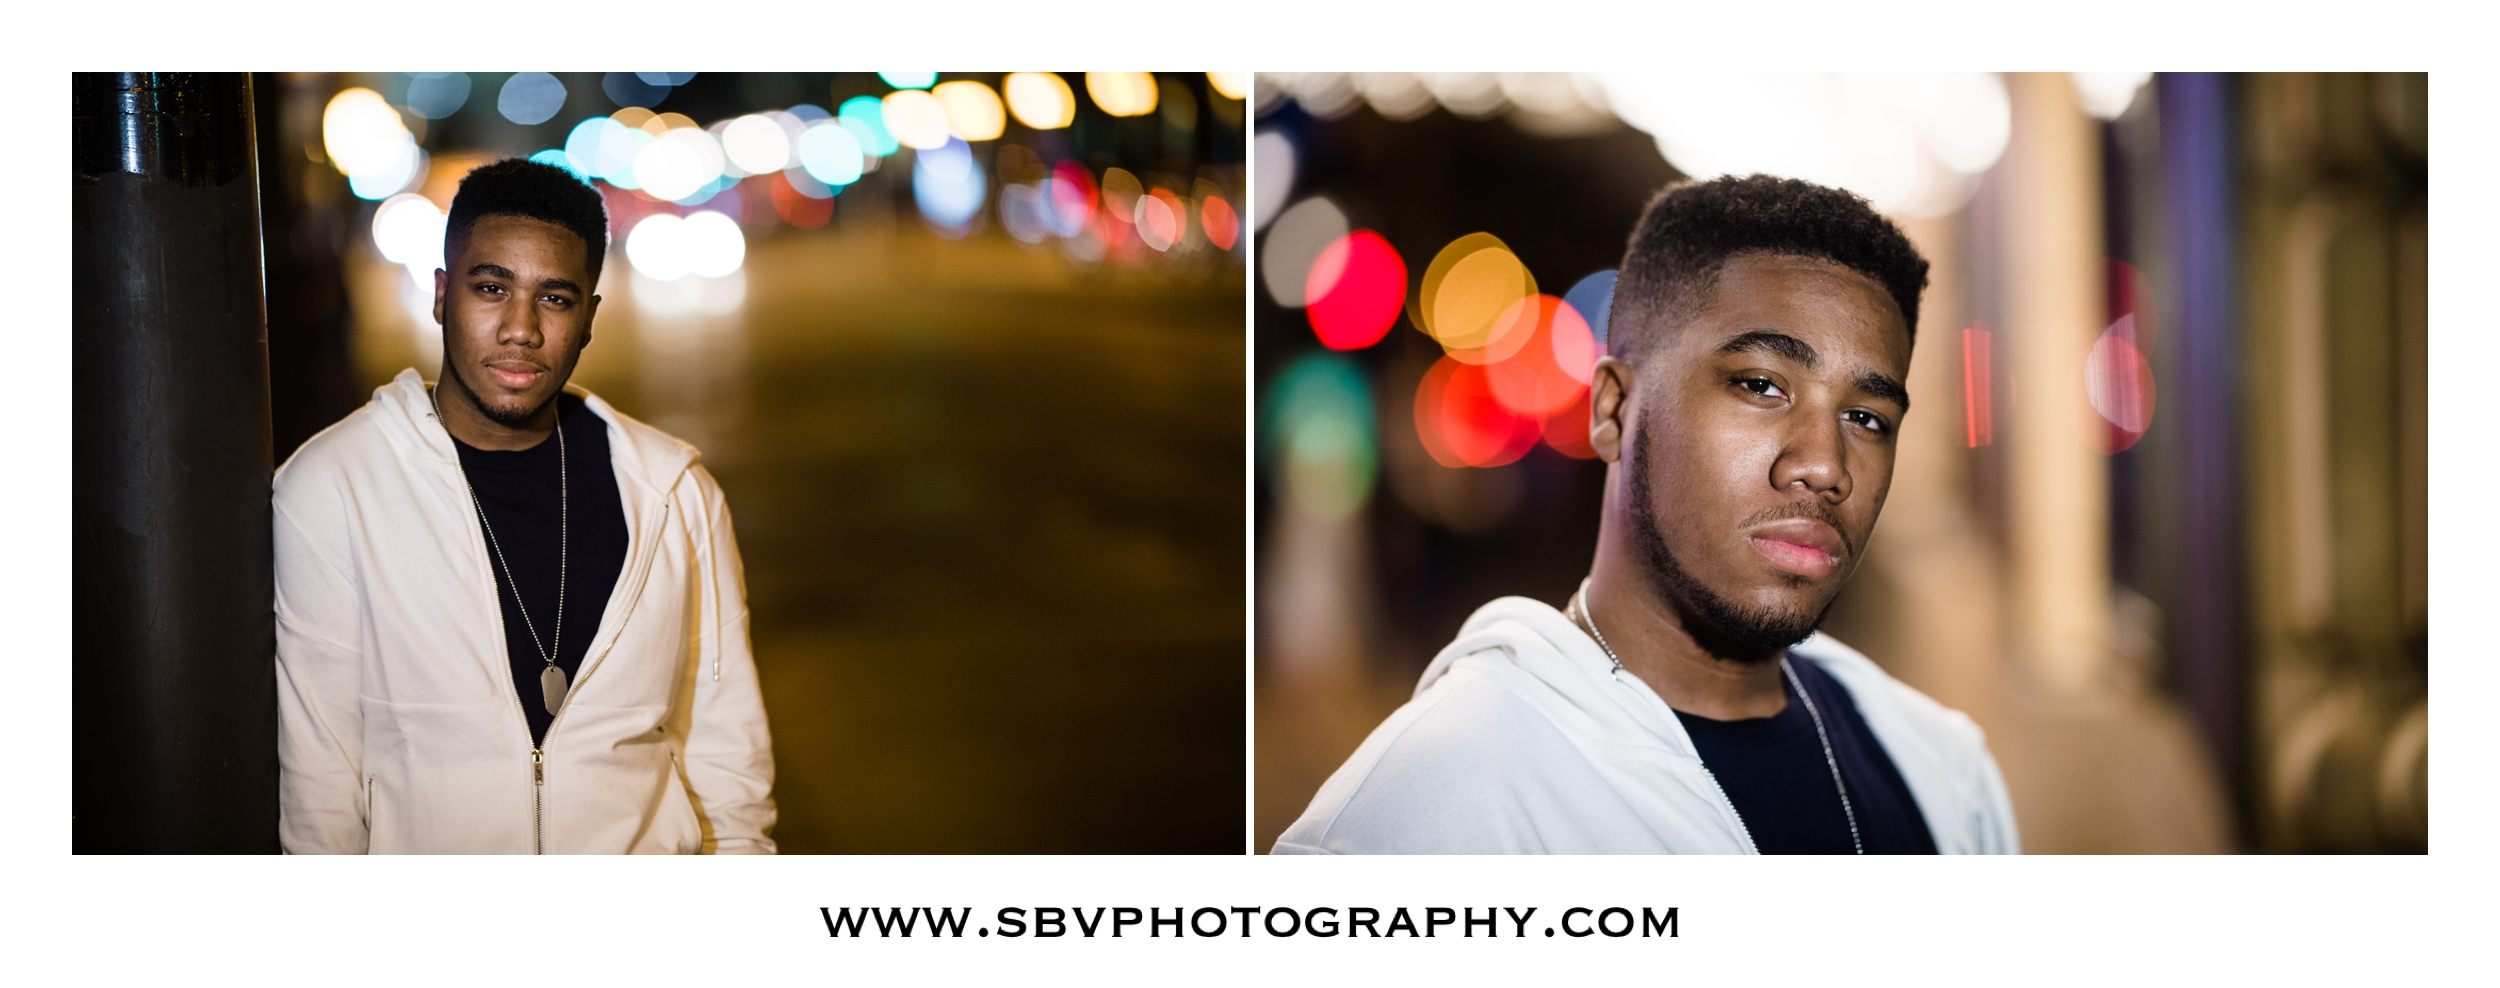 Senior pictures at night in downtown Chicago.